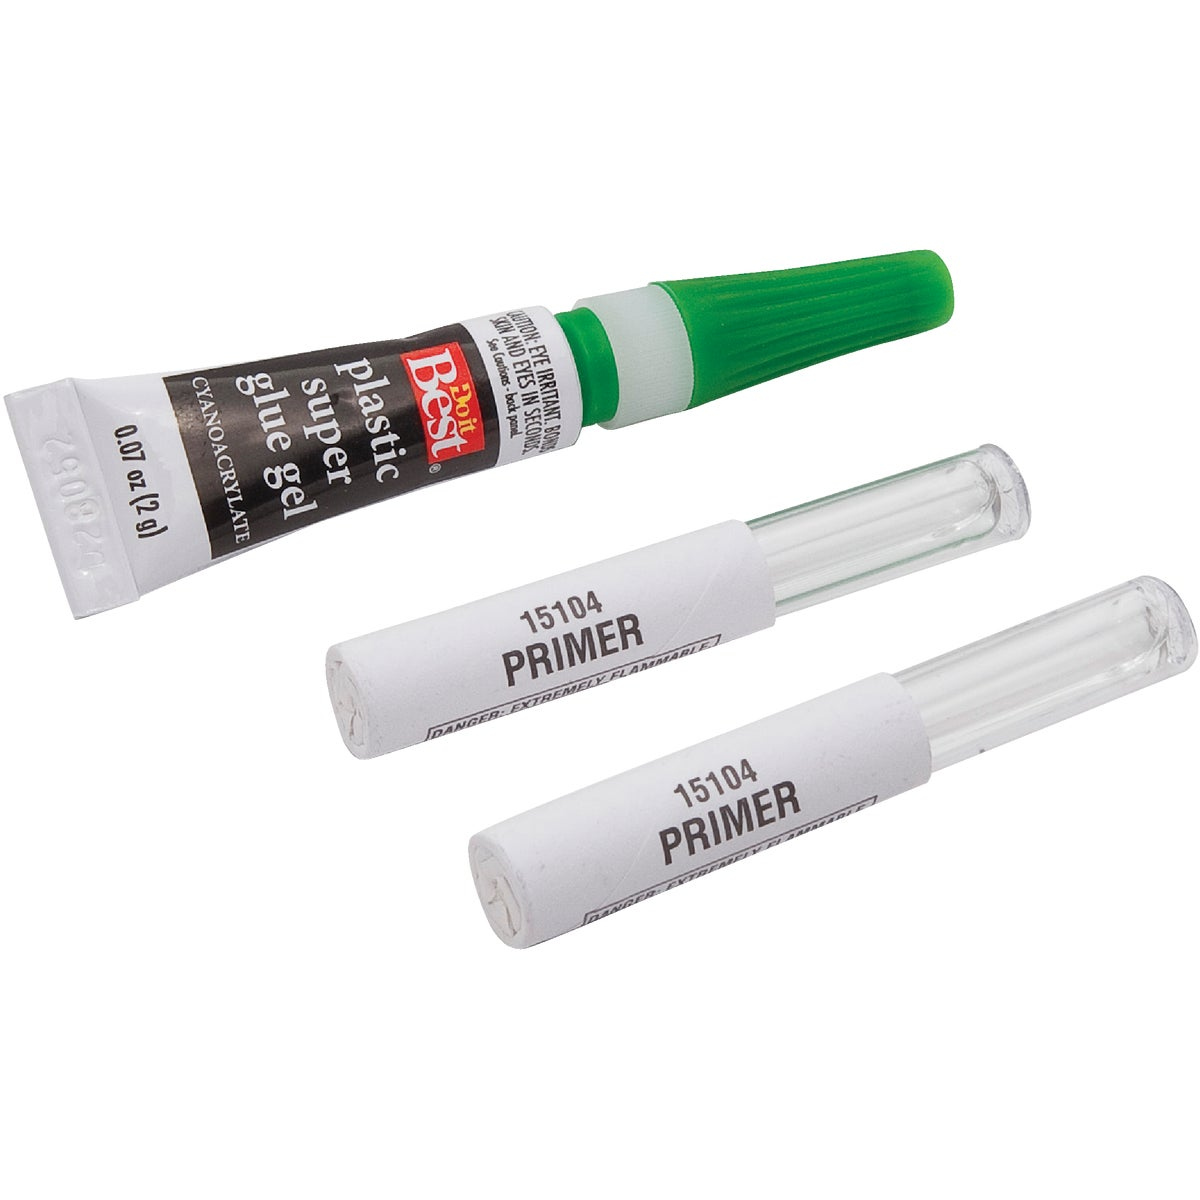 2GM PLASTIC SUPER GLUE - 386855 by Pacer Technology